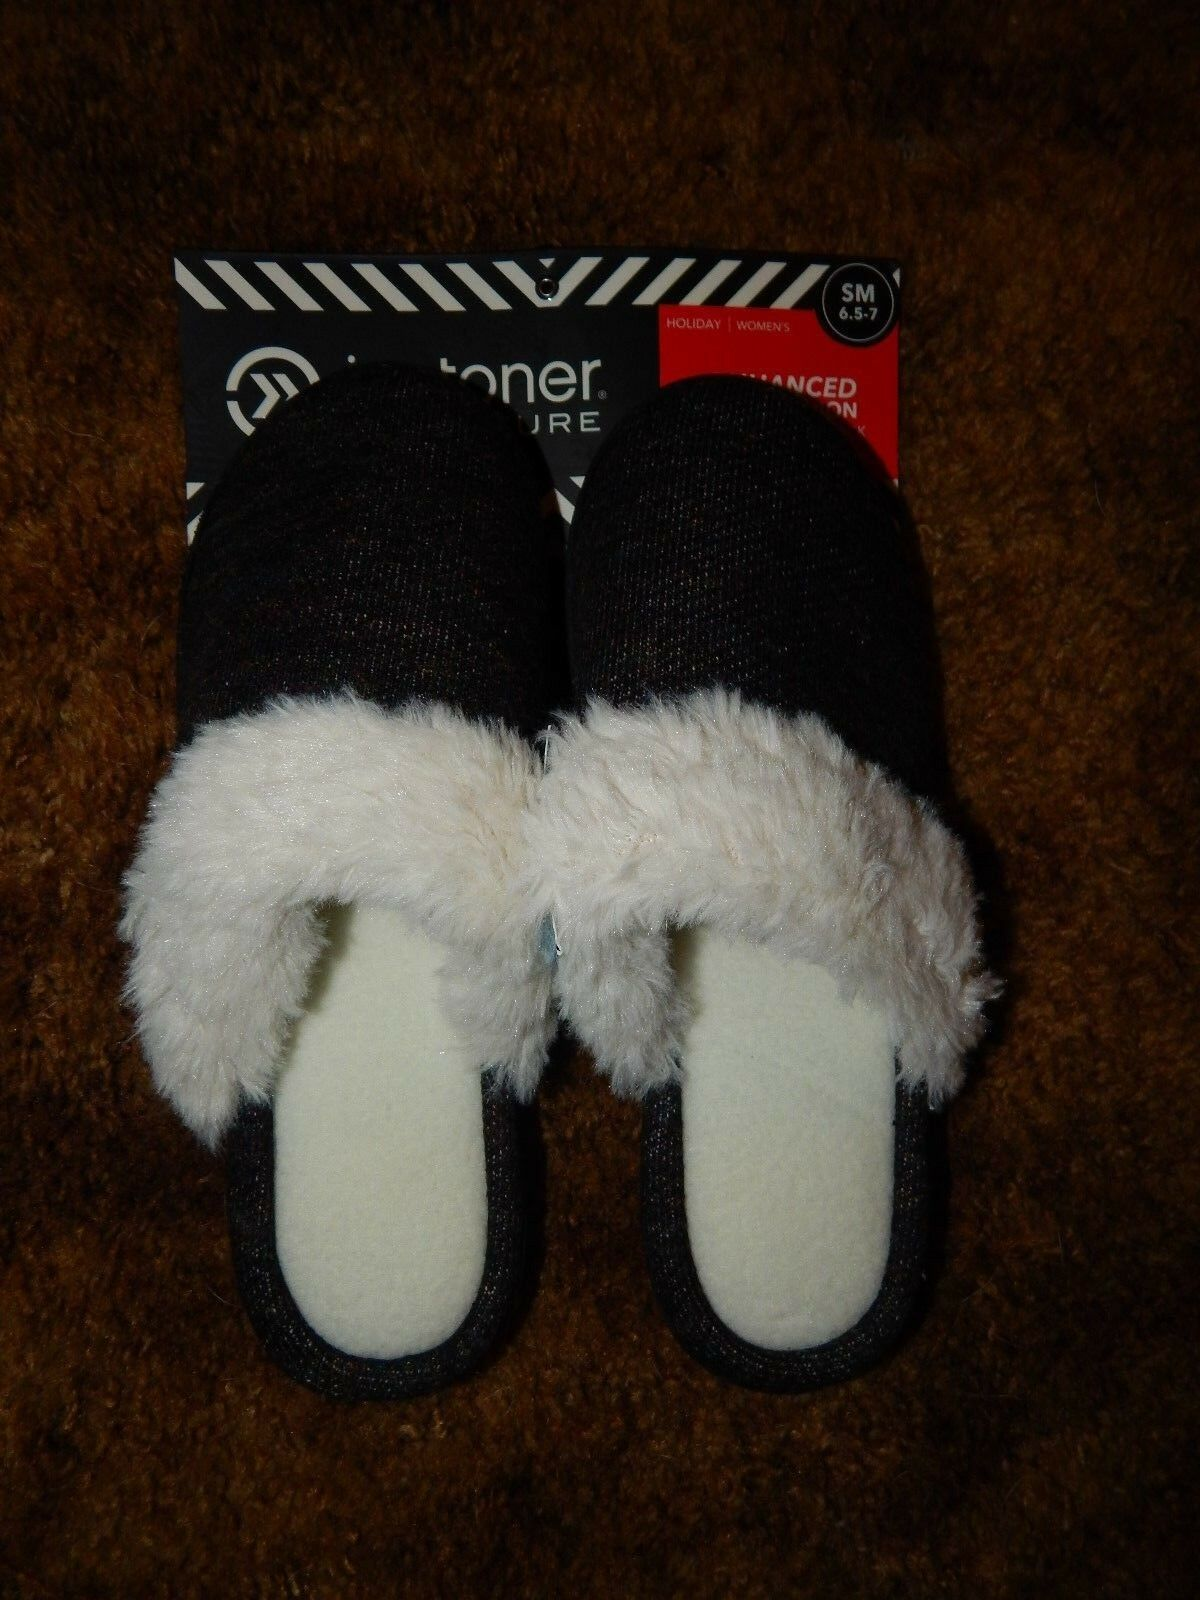 Men's/Women's S NEW Isotoner Slippers Size S Men's/Women's (6.5-7) Crazy price fashionable a wide variety of goods ebbdb9